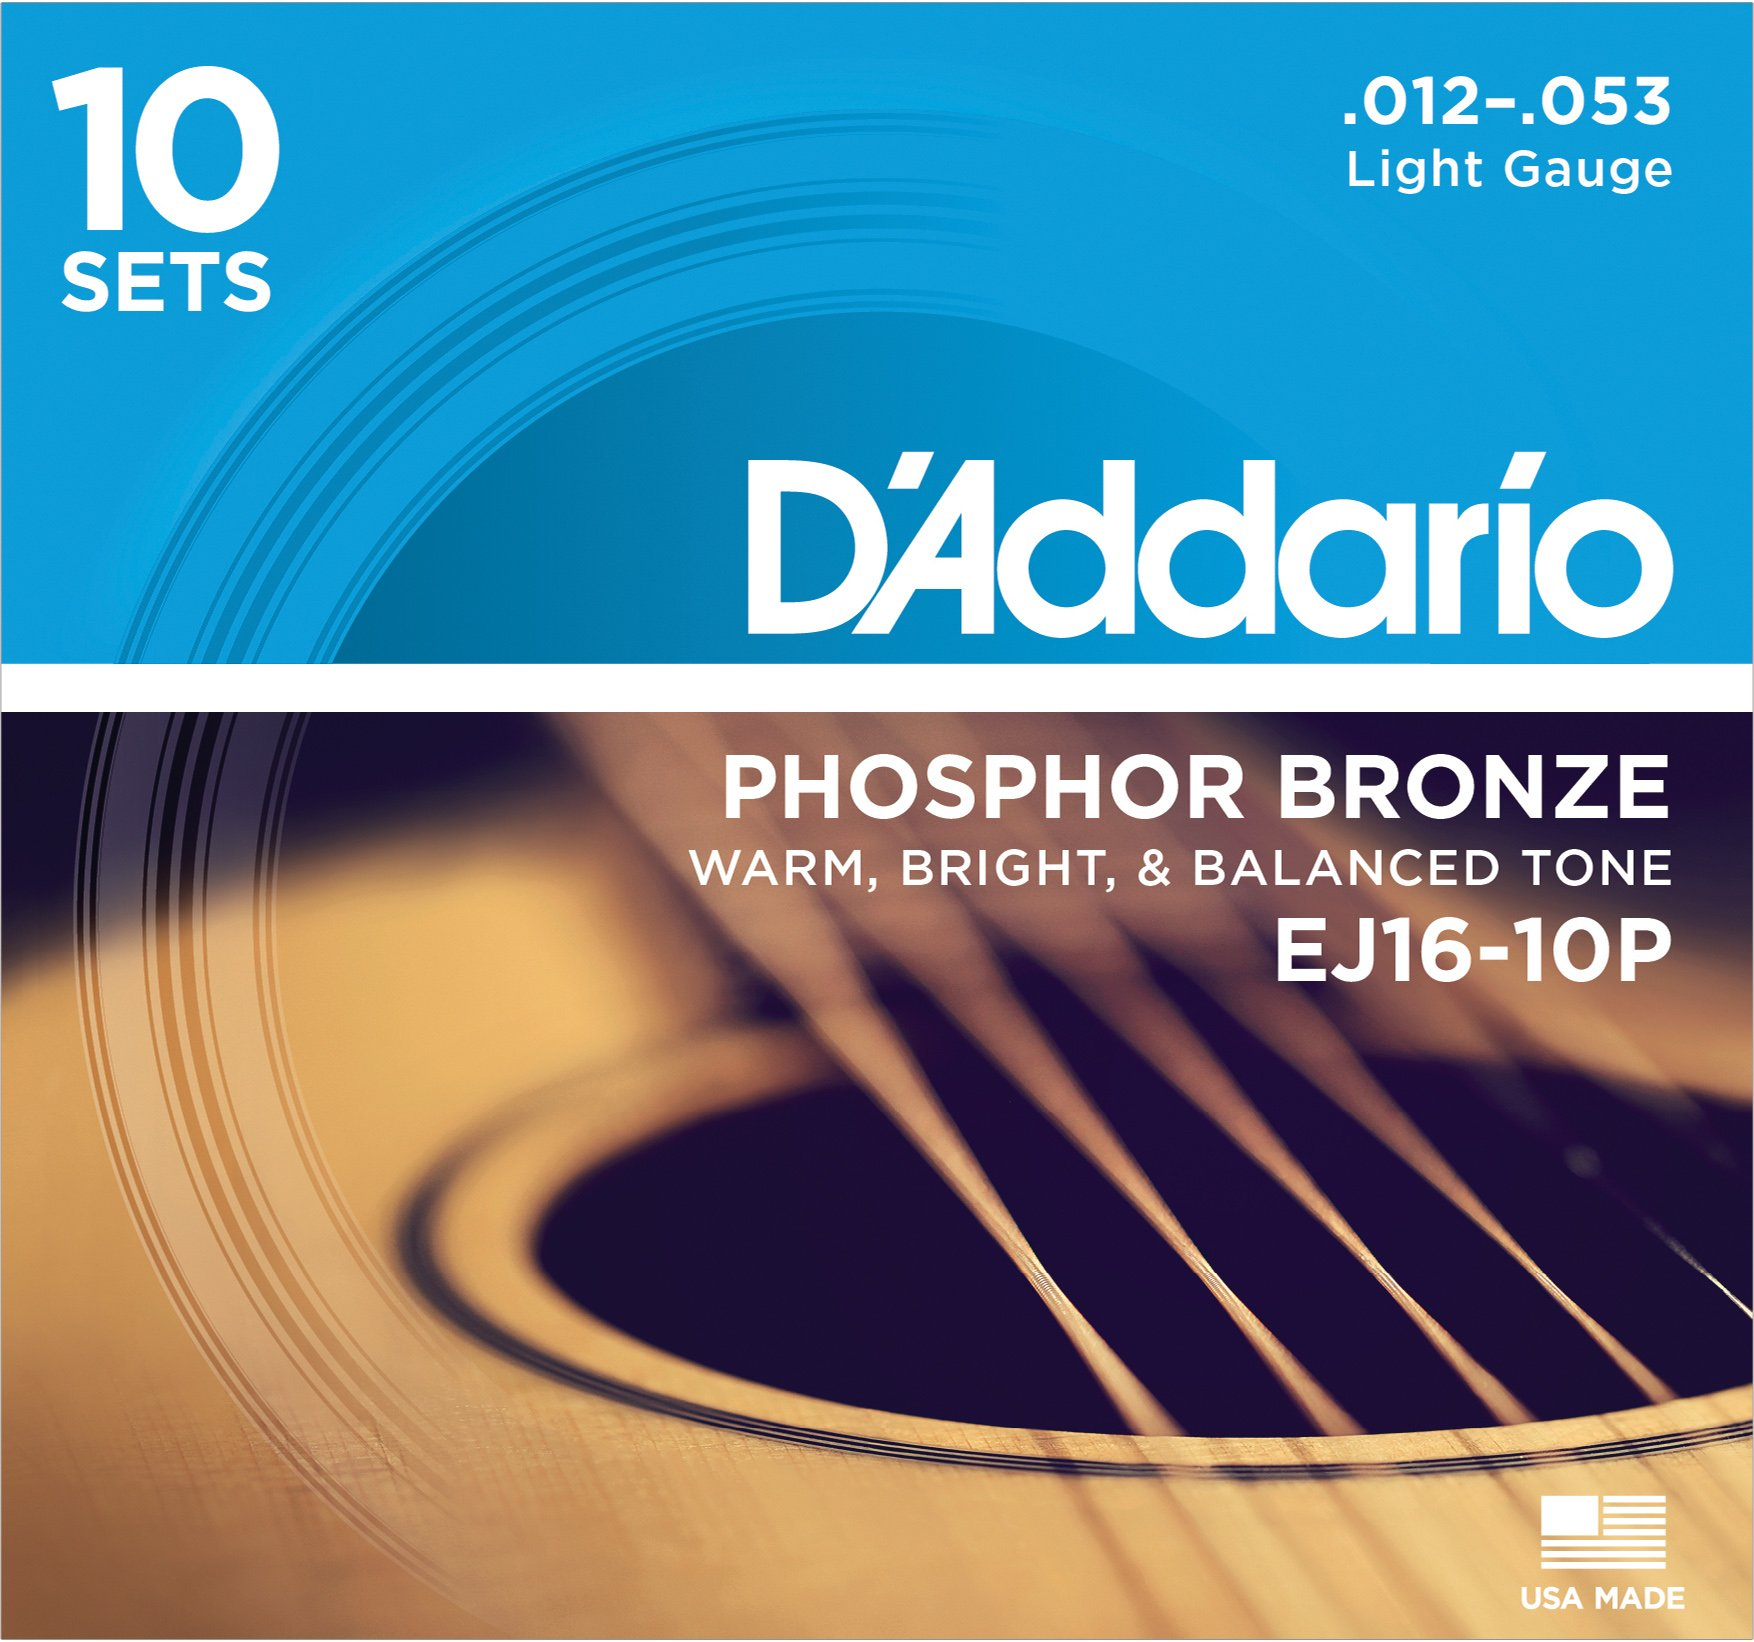 D'Addario EJ16 Phosphor Bronze Acoustic Guitar Strings, Light (10 Pack) - Corrosion-Resistant Phosphor Bronze, Offers a Warm, Bright and Well-Balanced Acoustic Tone and Comfortable Playability by D'Addario